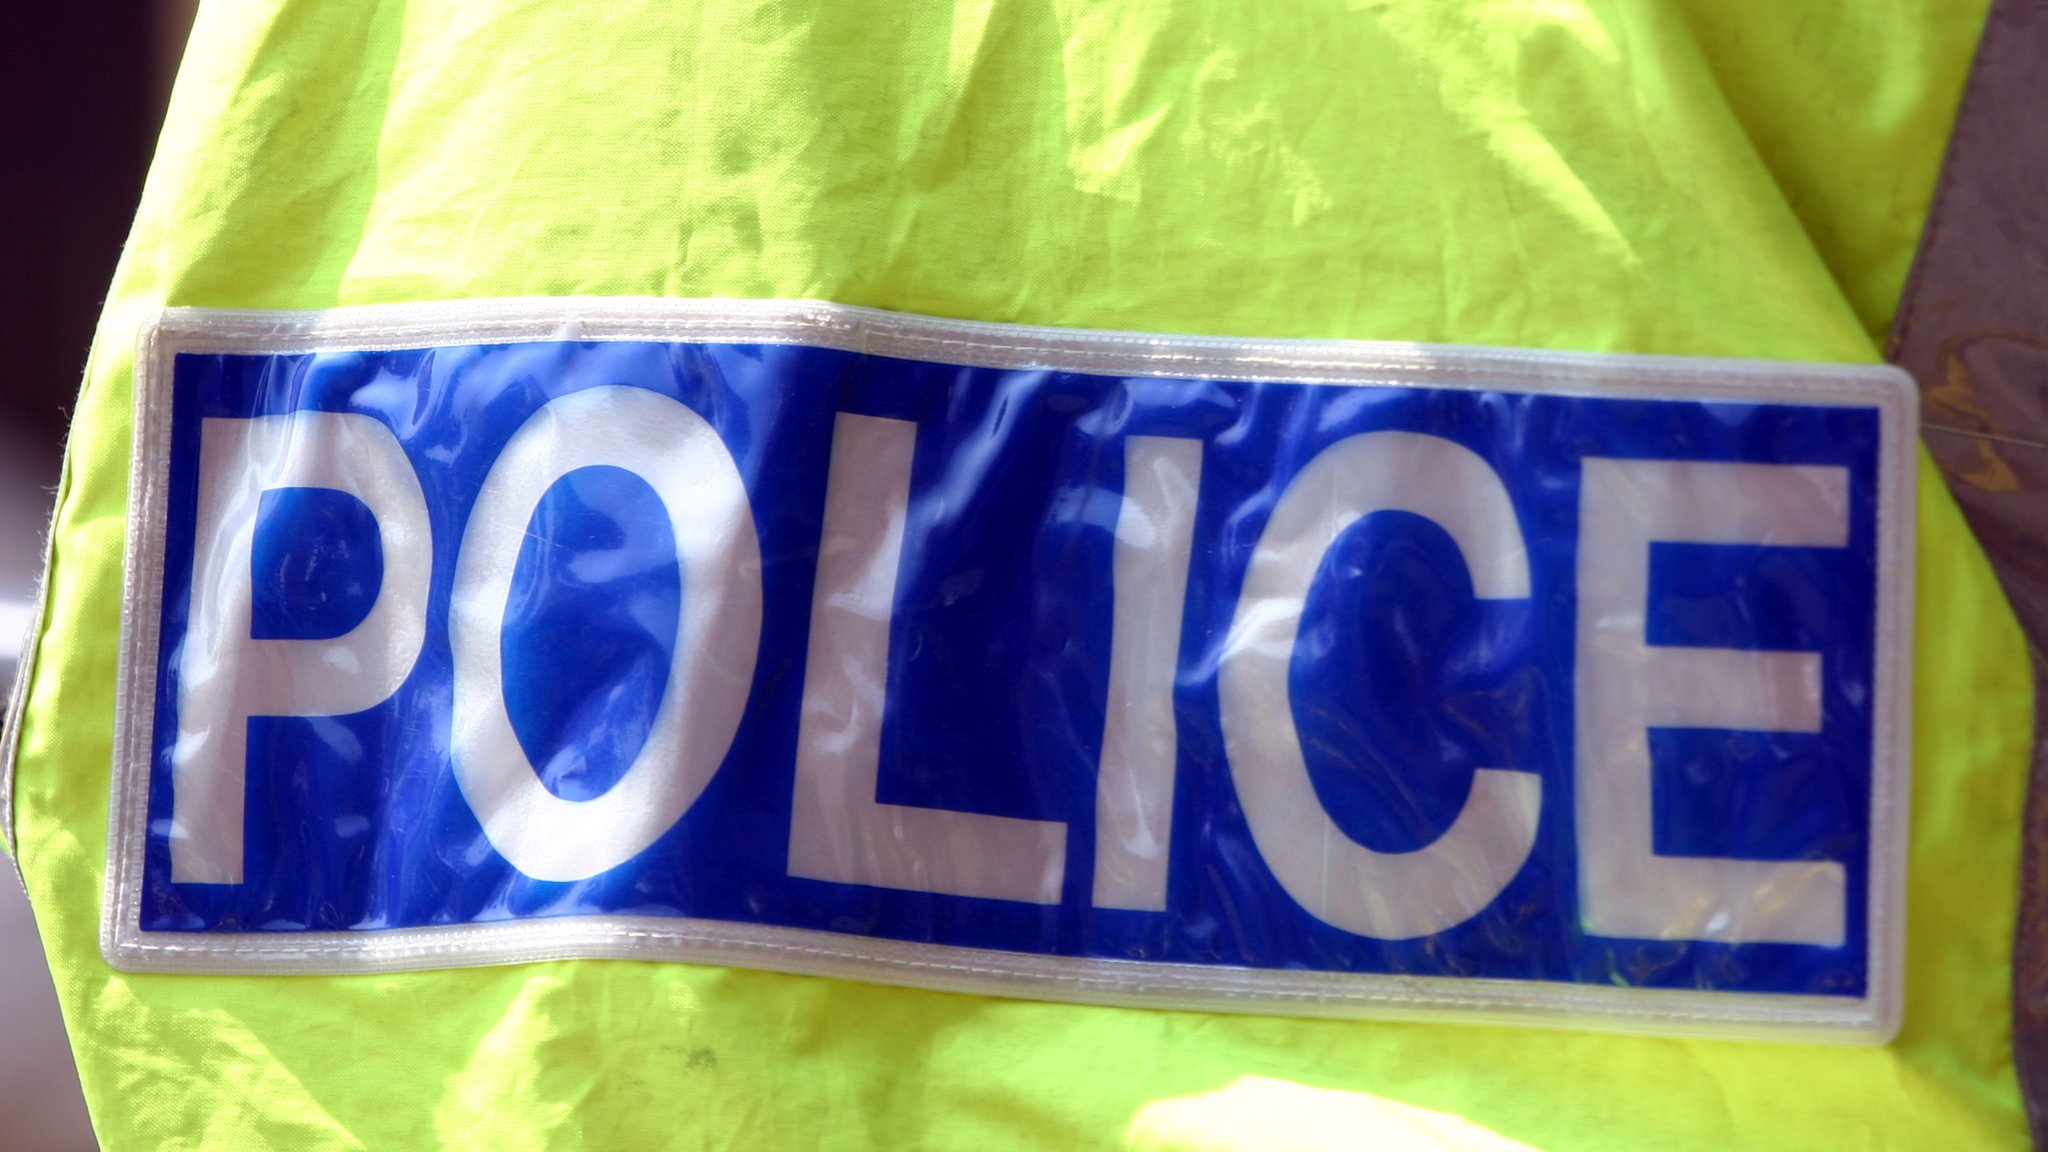 Surrey police constable sacked for punching handcuffed man